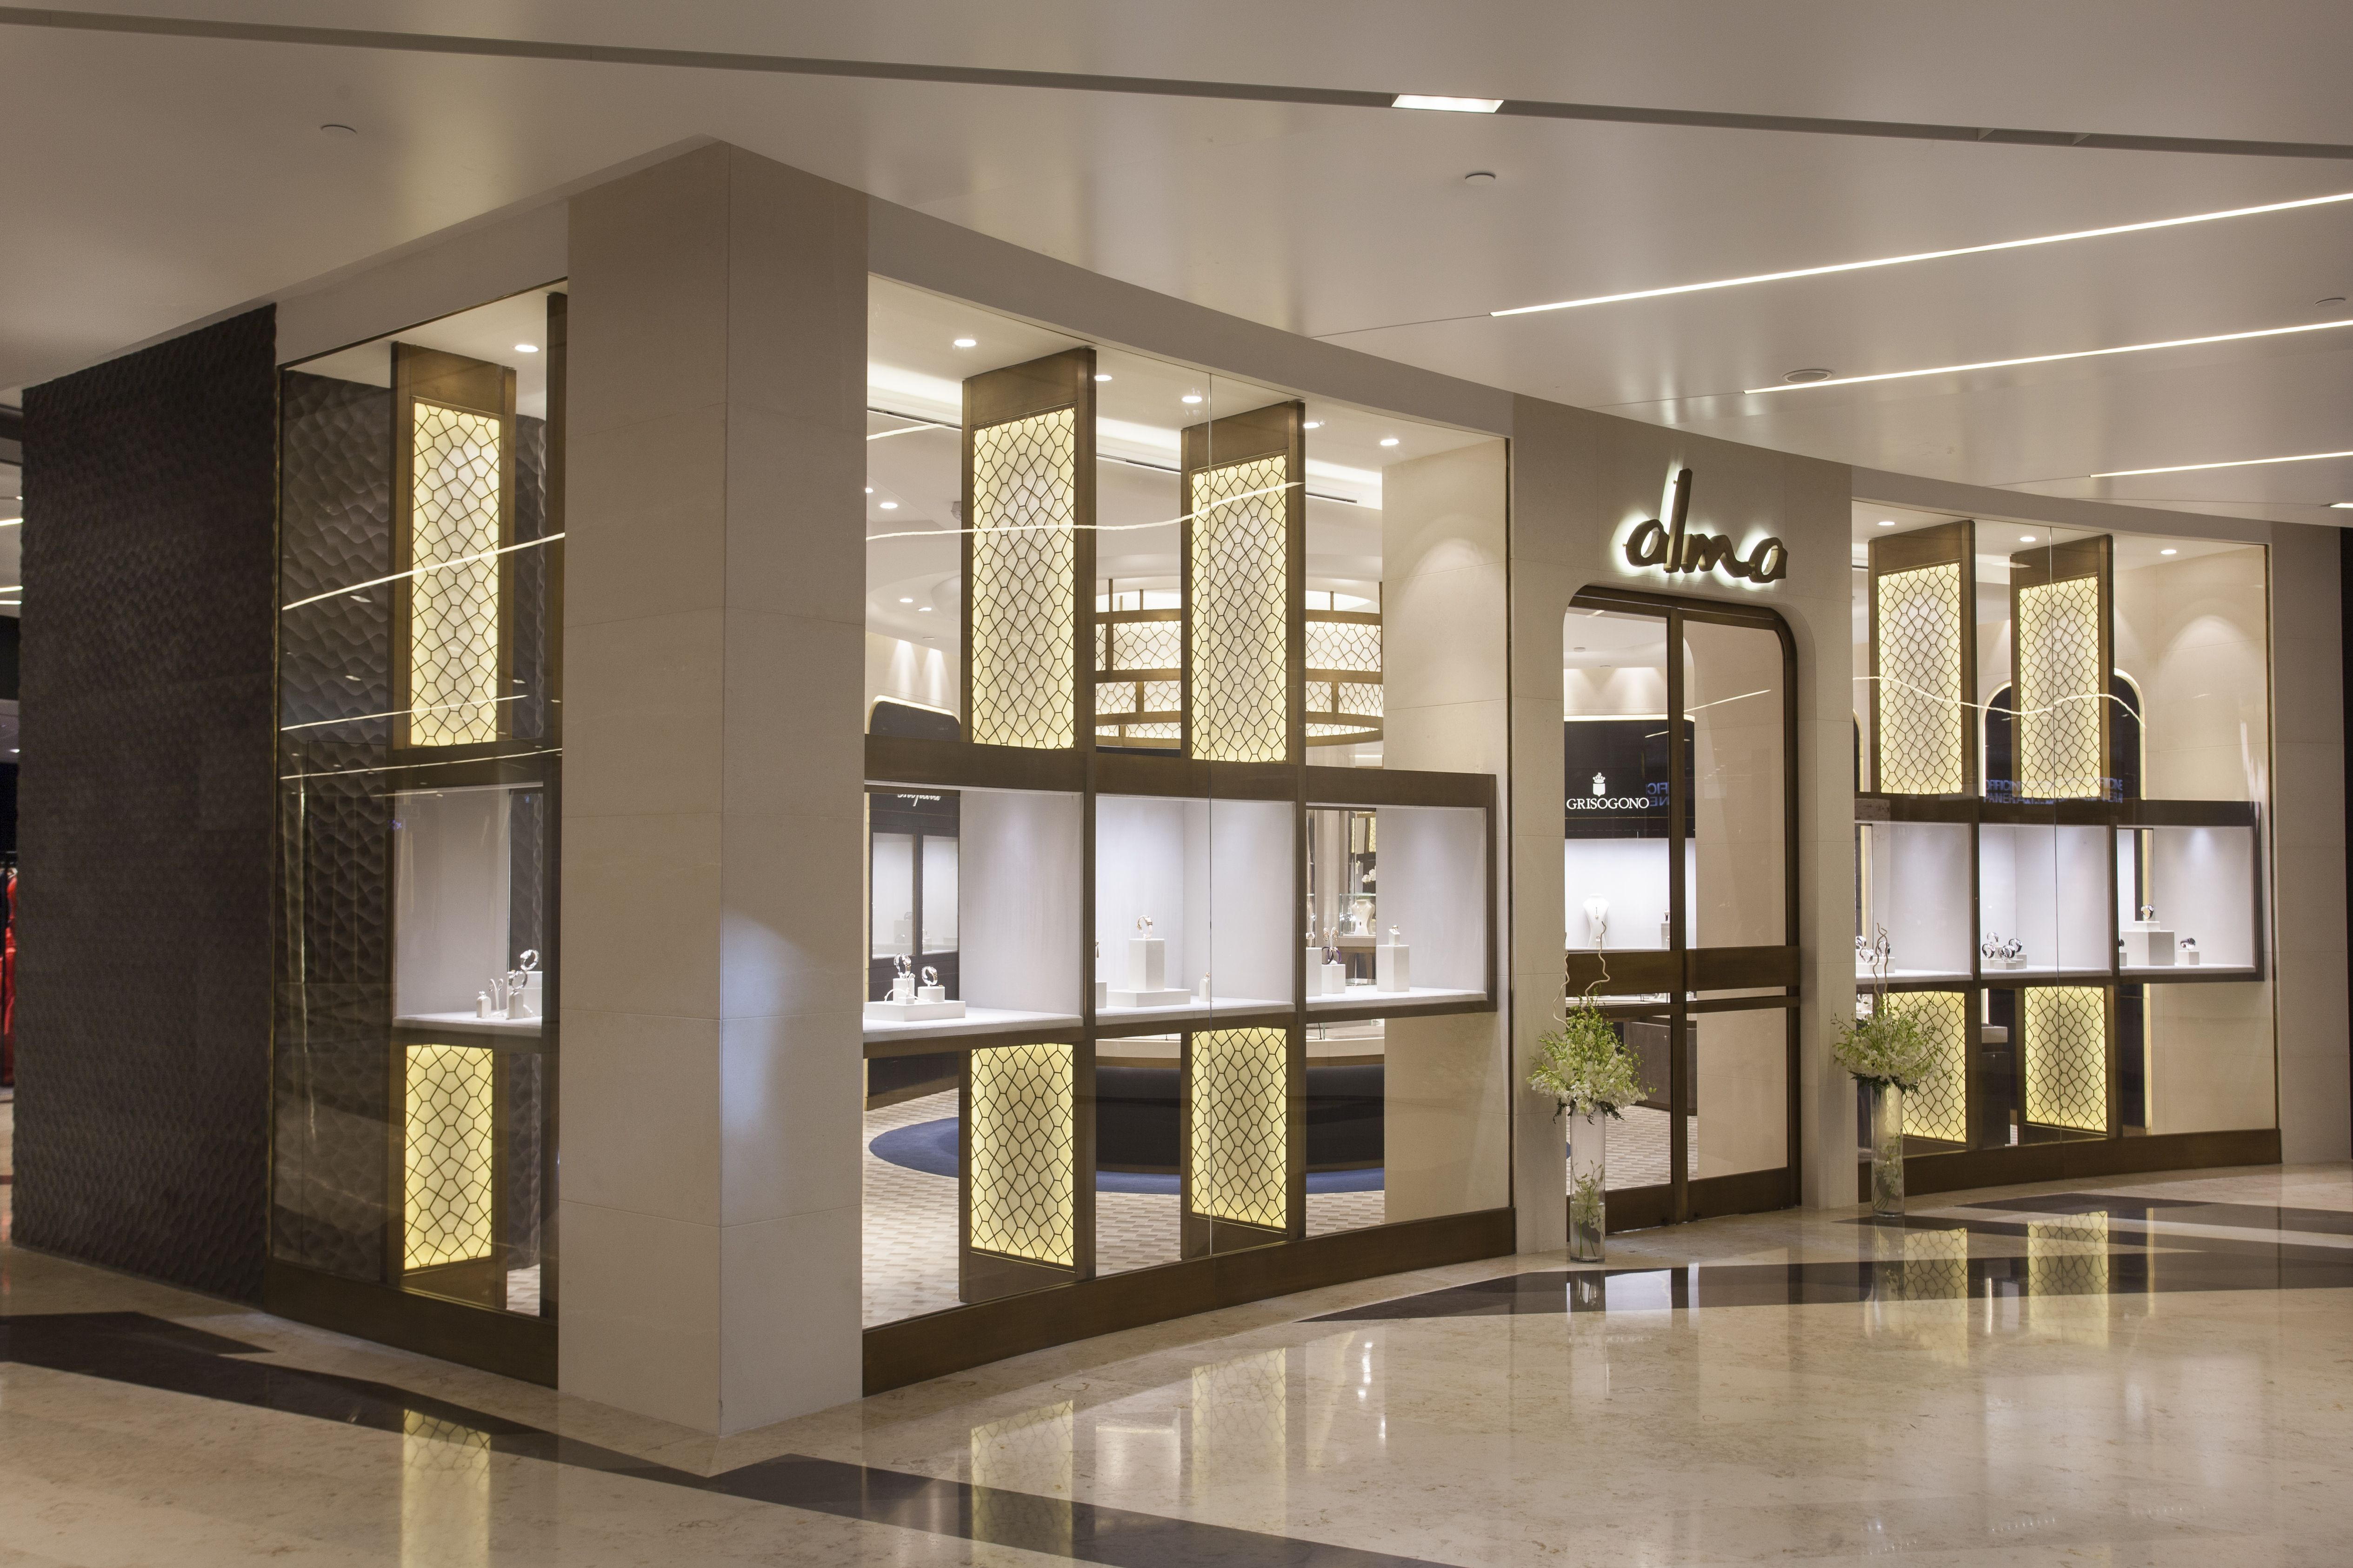 ALMA in AL Hamra - Kuwait Designed and Built by Dfineline Interior